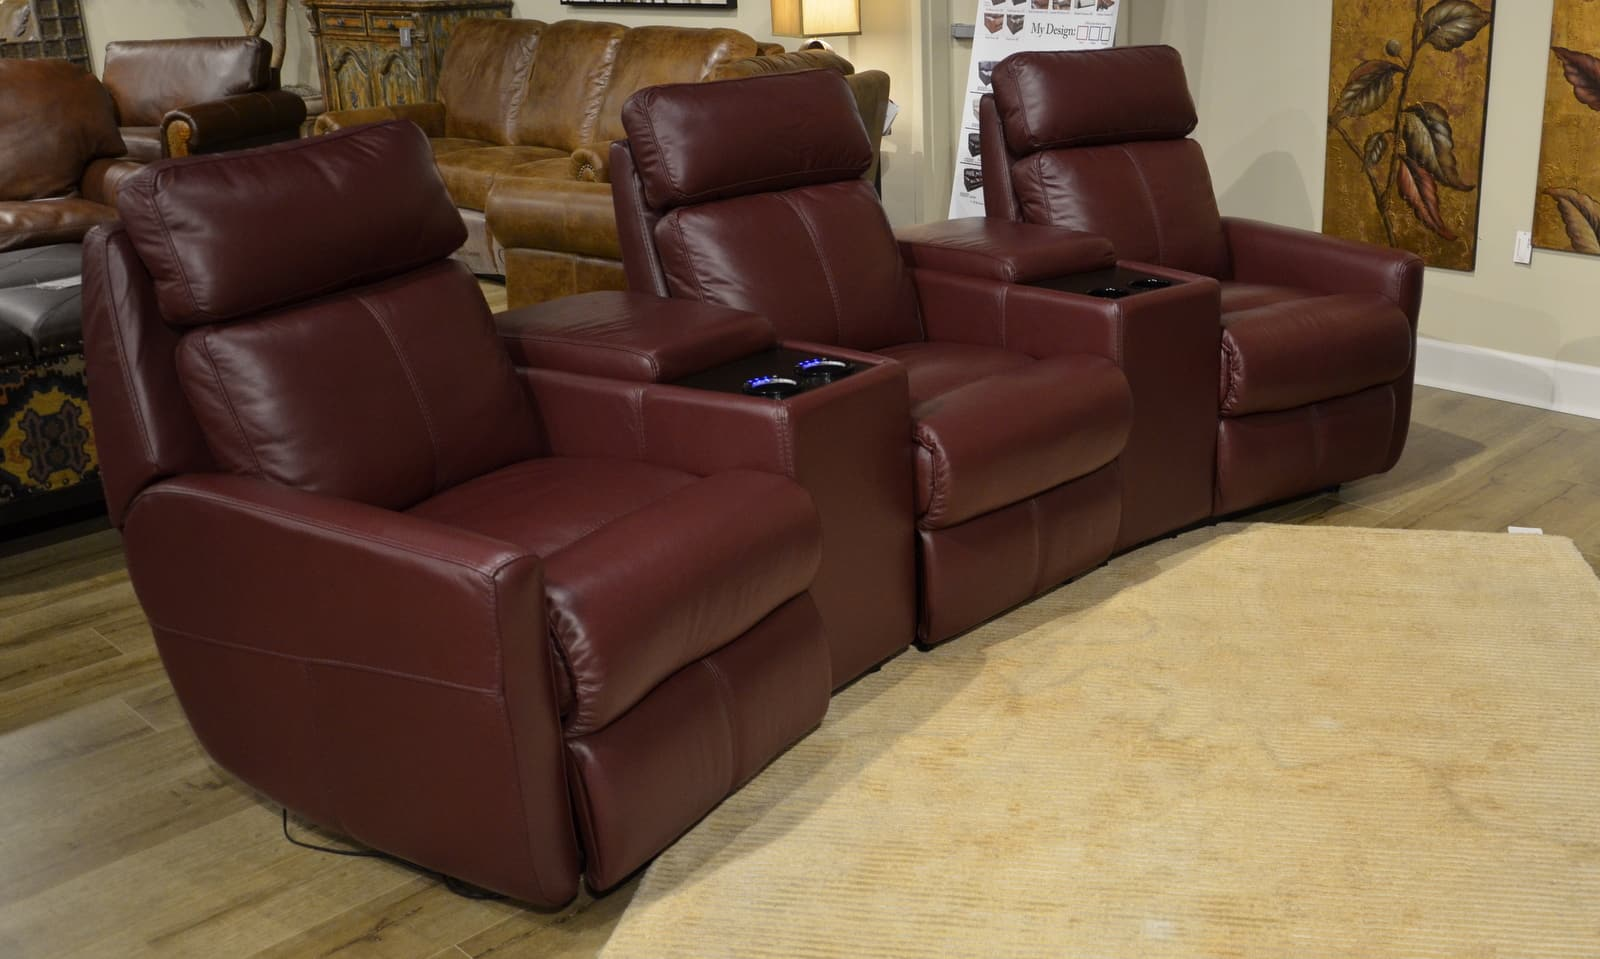 Where can I sit in PremiereHTS Home Theater Seating?